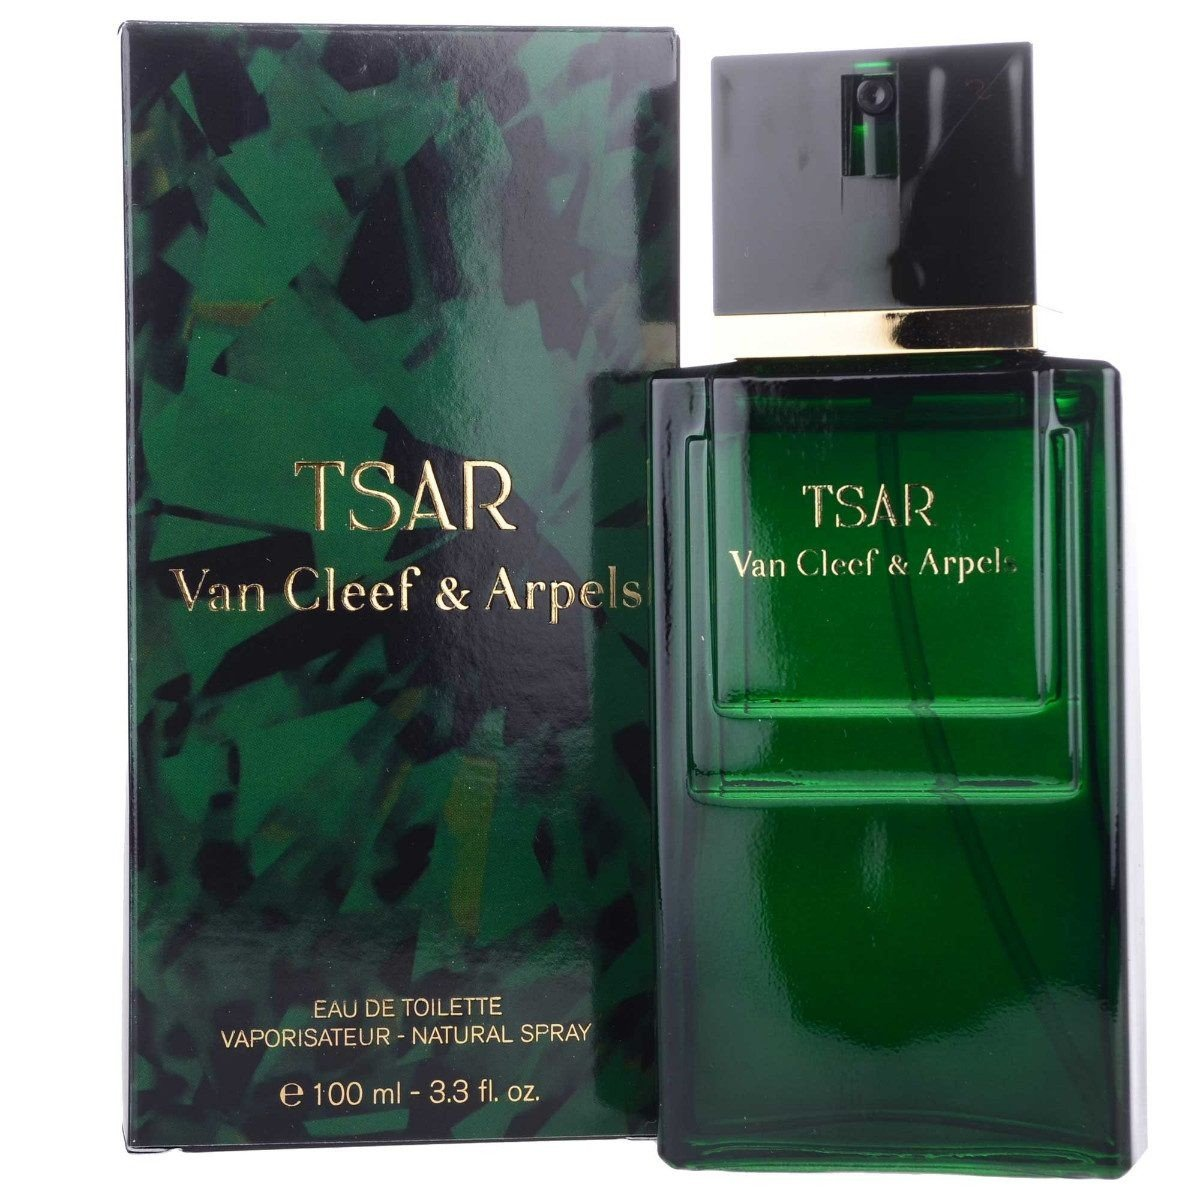 B000C1ZFAW Tsar By Van Cleef & Arpels For Men. Eau De Toilette Spray 3.3 Ounces 719Eaqxf9qL._SL1200_